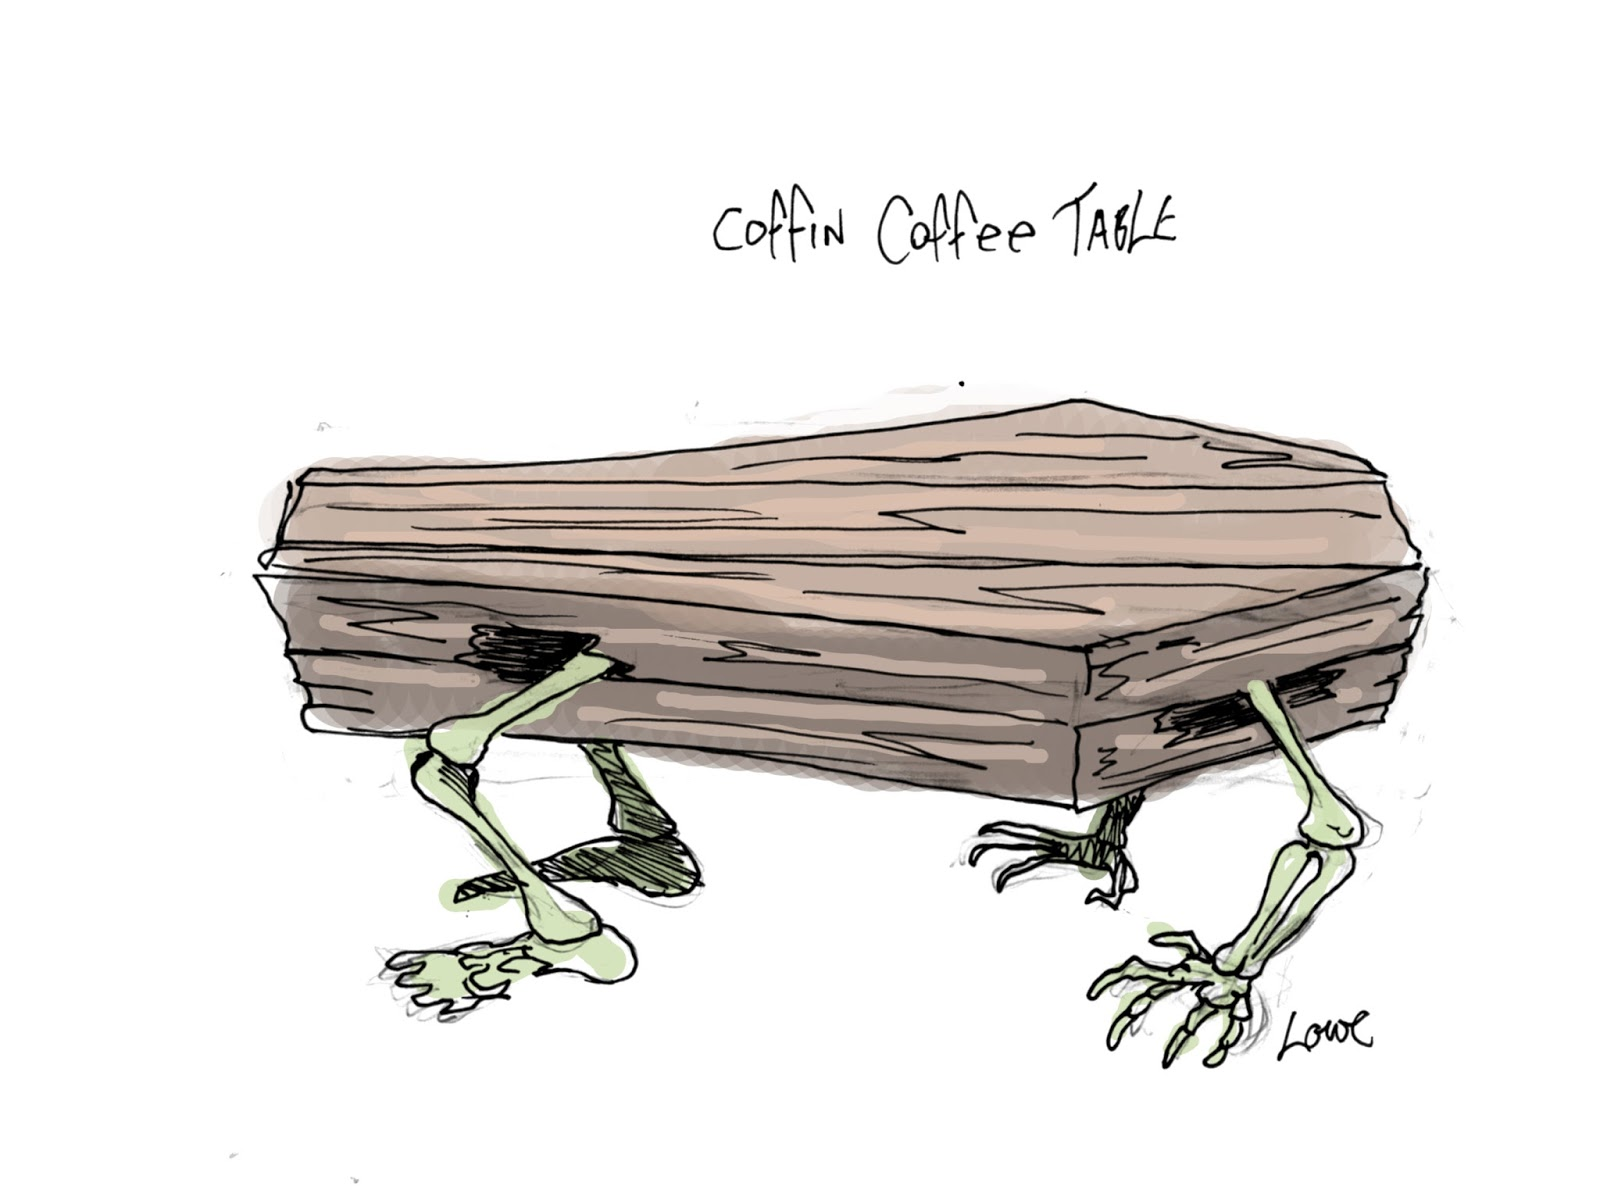 DAVE LOWE DESIGN the Blog 6th Day of Halloween Coffin Coffee Table